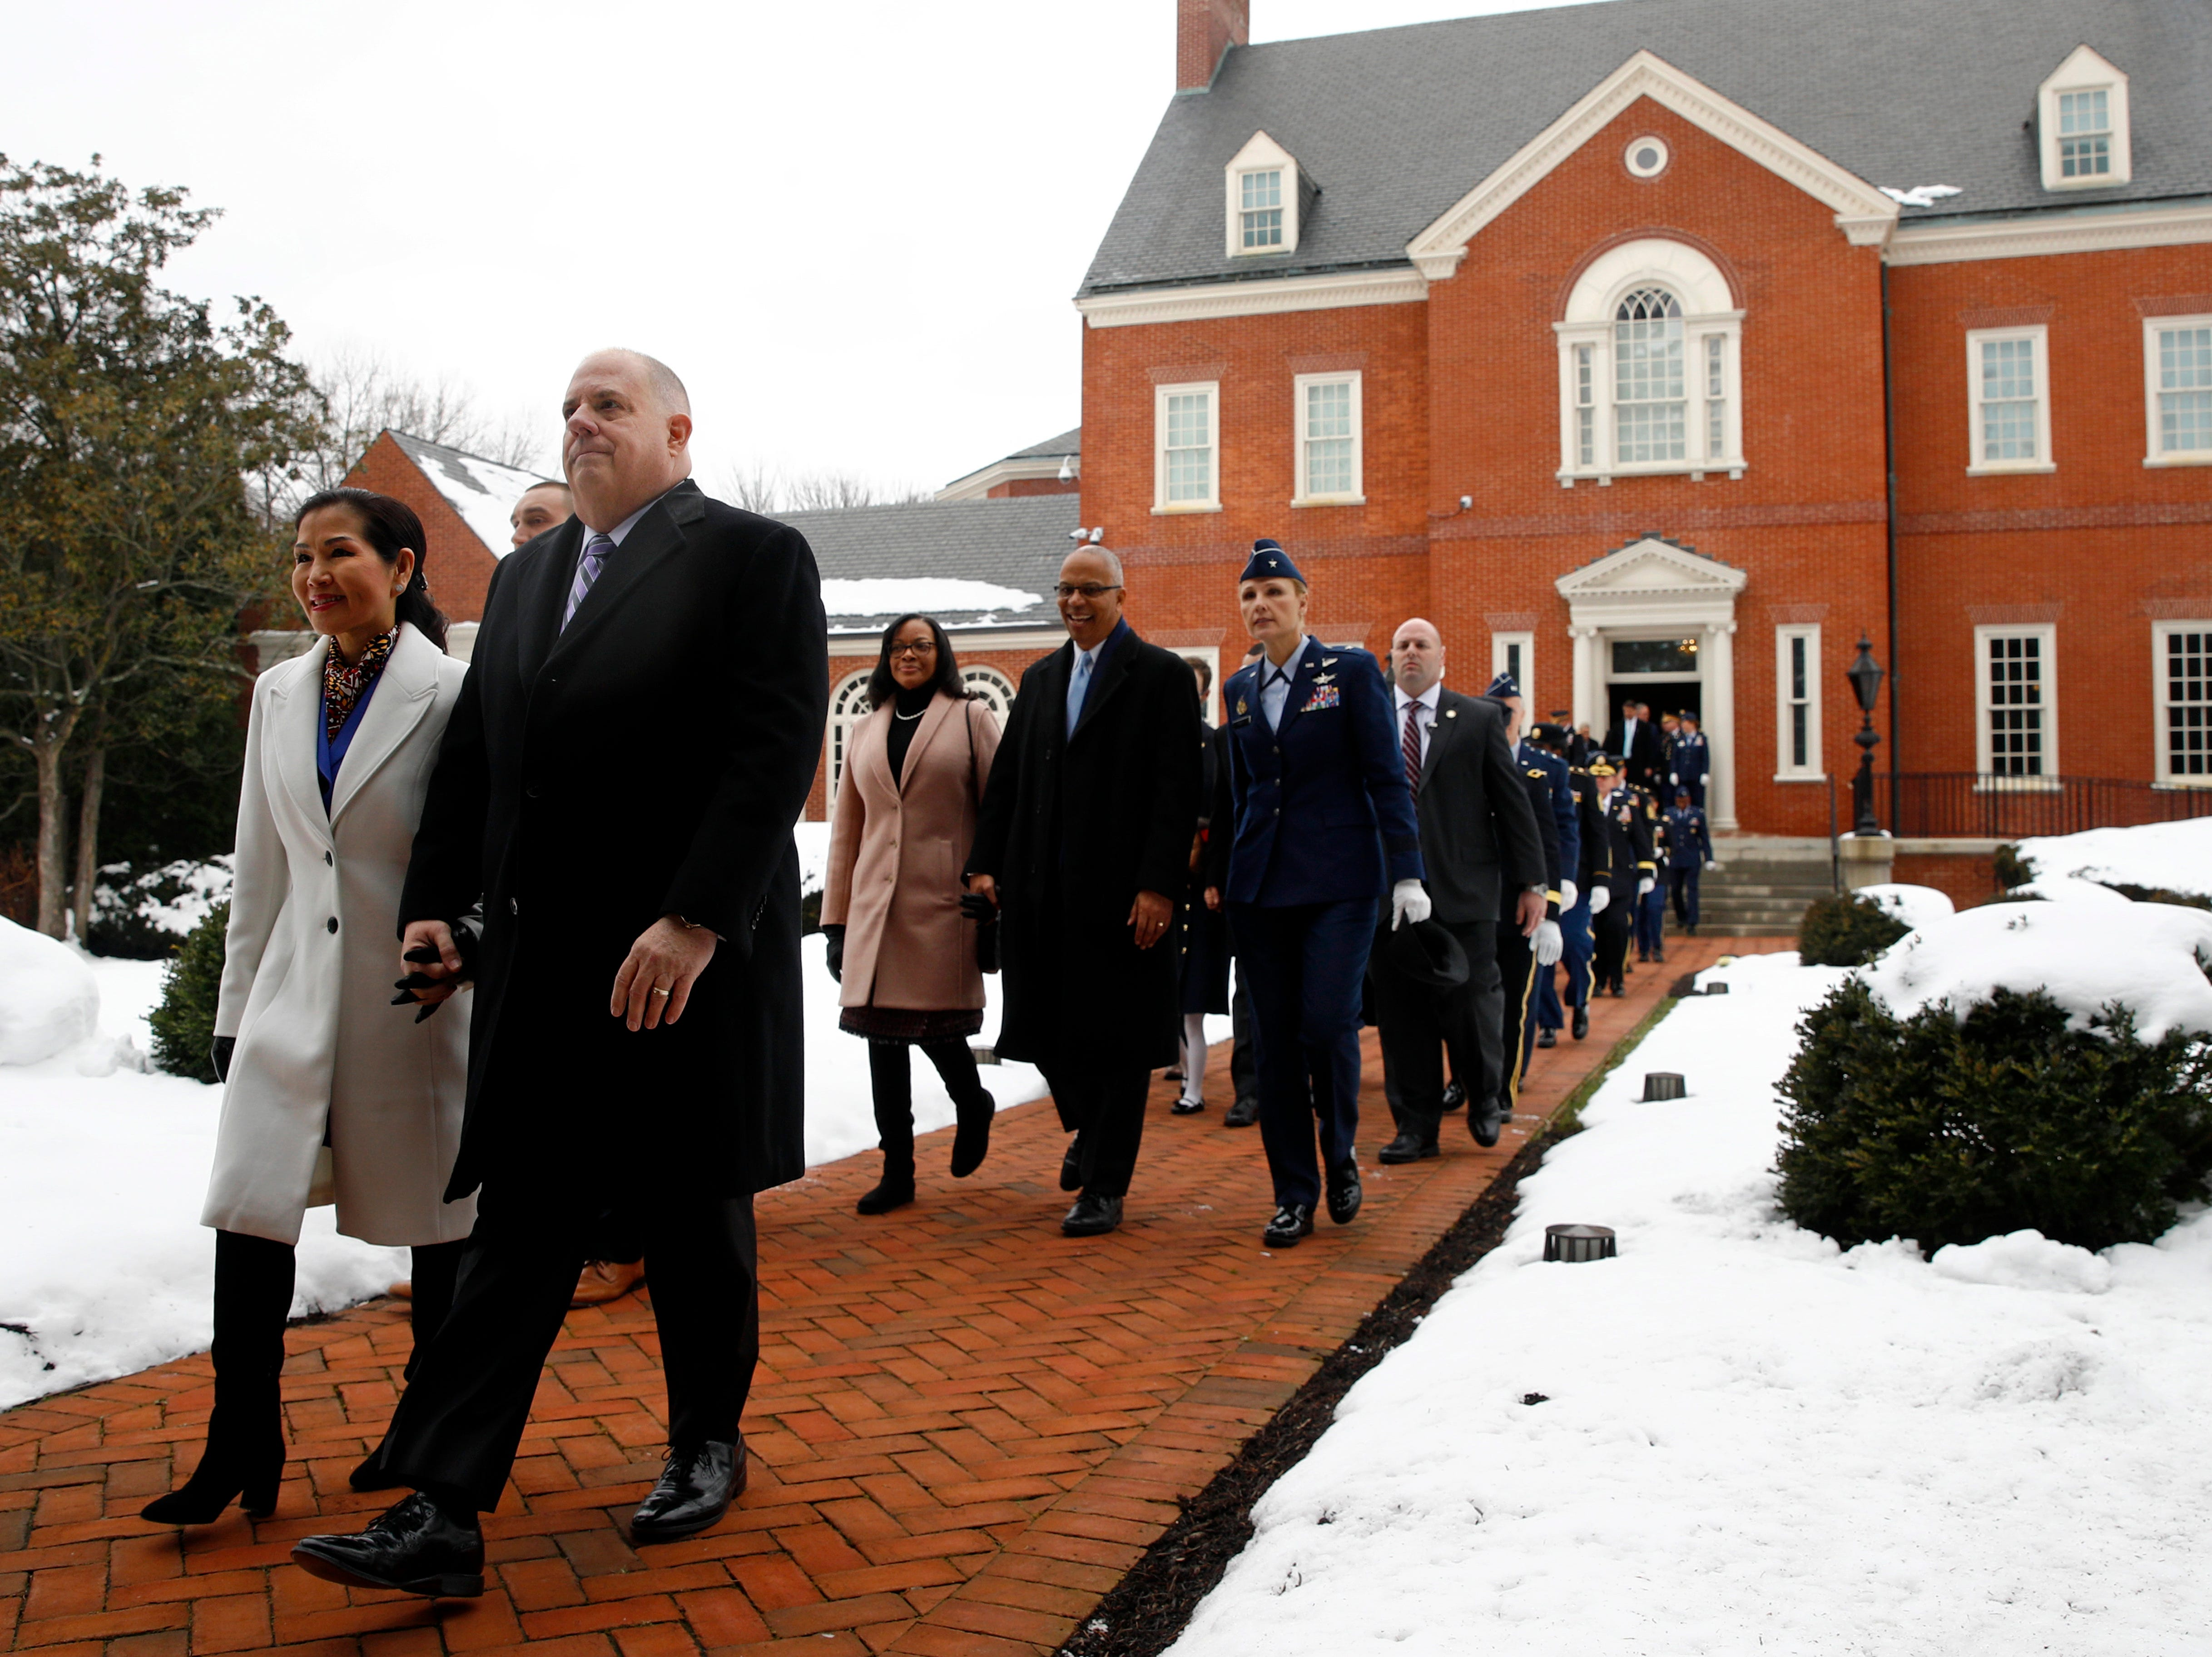 Maryland Gov. Larry Hogan, second from left, departs Government House, the Governor's mansion, with first lady Yumi Hogan before his inauguration ceremony Wednesday, Jan. 16, 2019, in Annapolis.